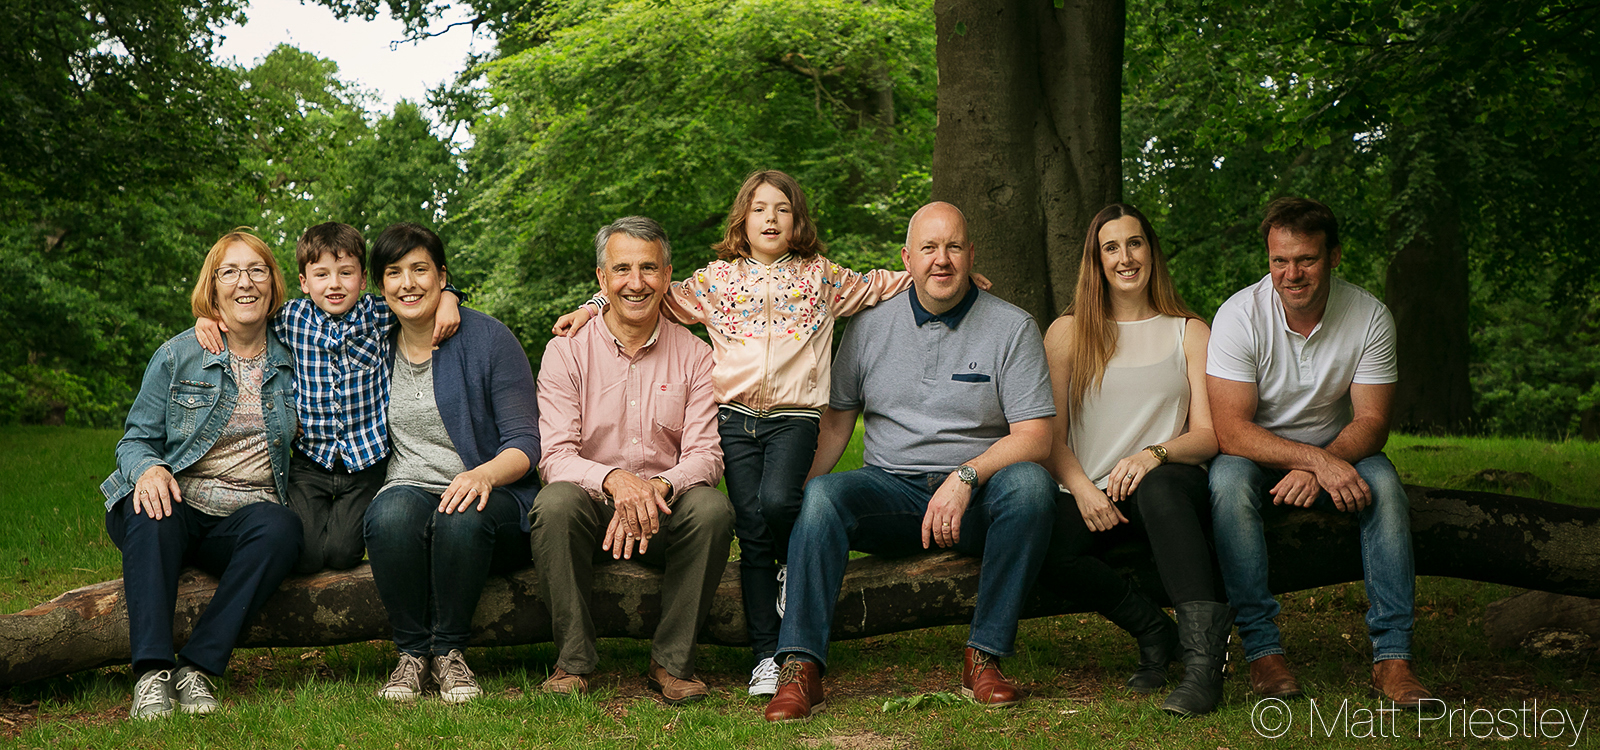 Family-portrait-photography-nr-Altrincham-by-local-photographer-Matt-Priiestley-7